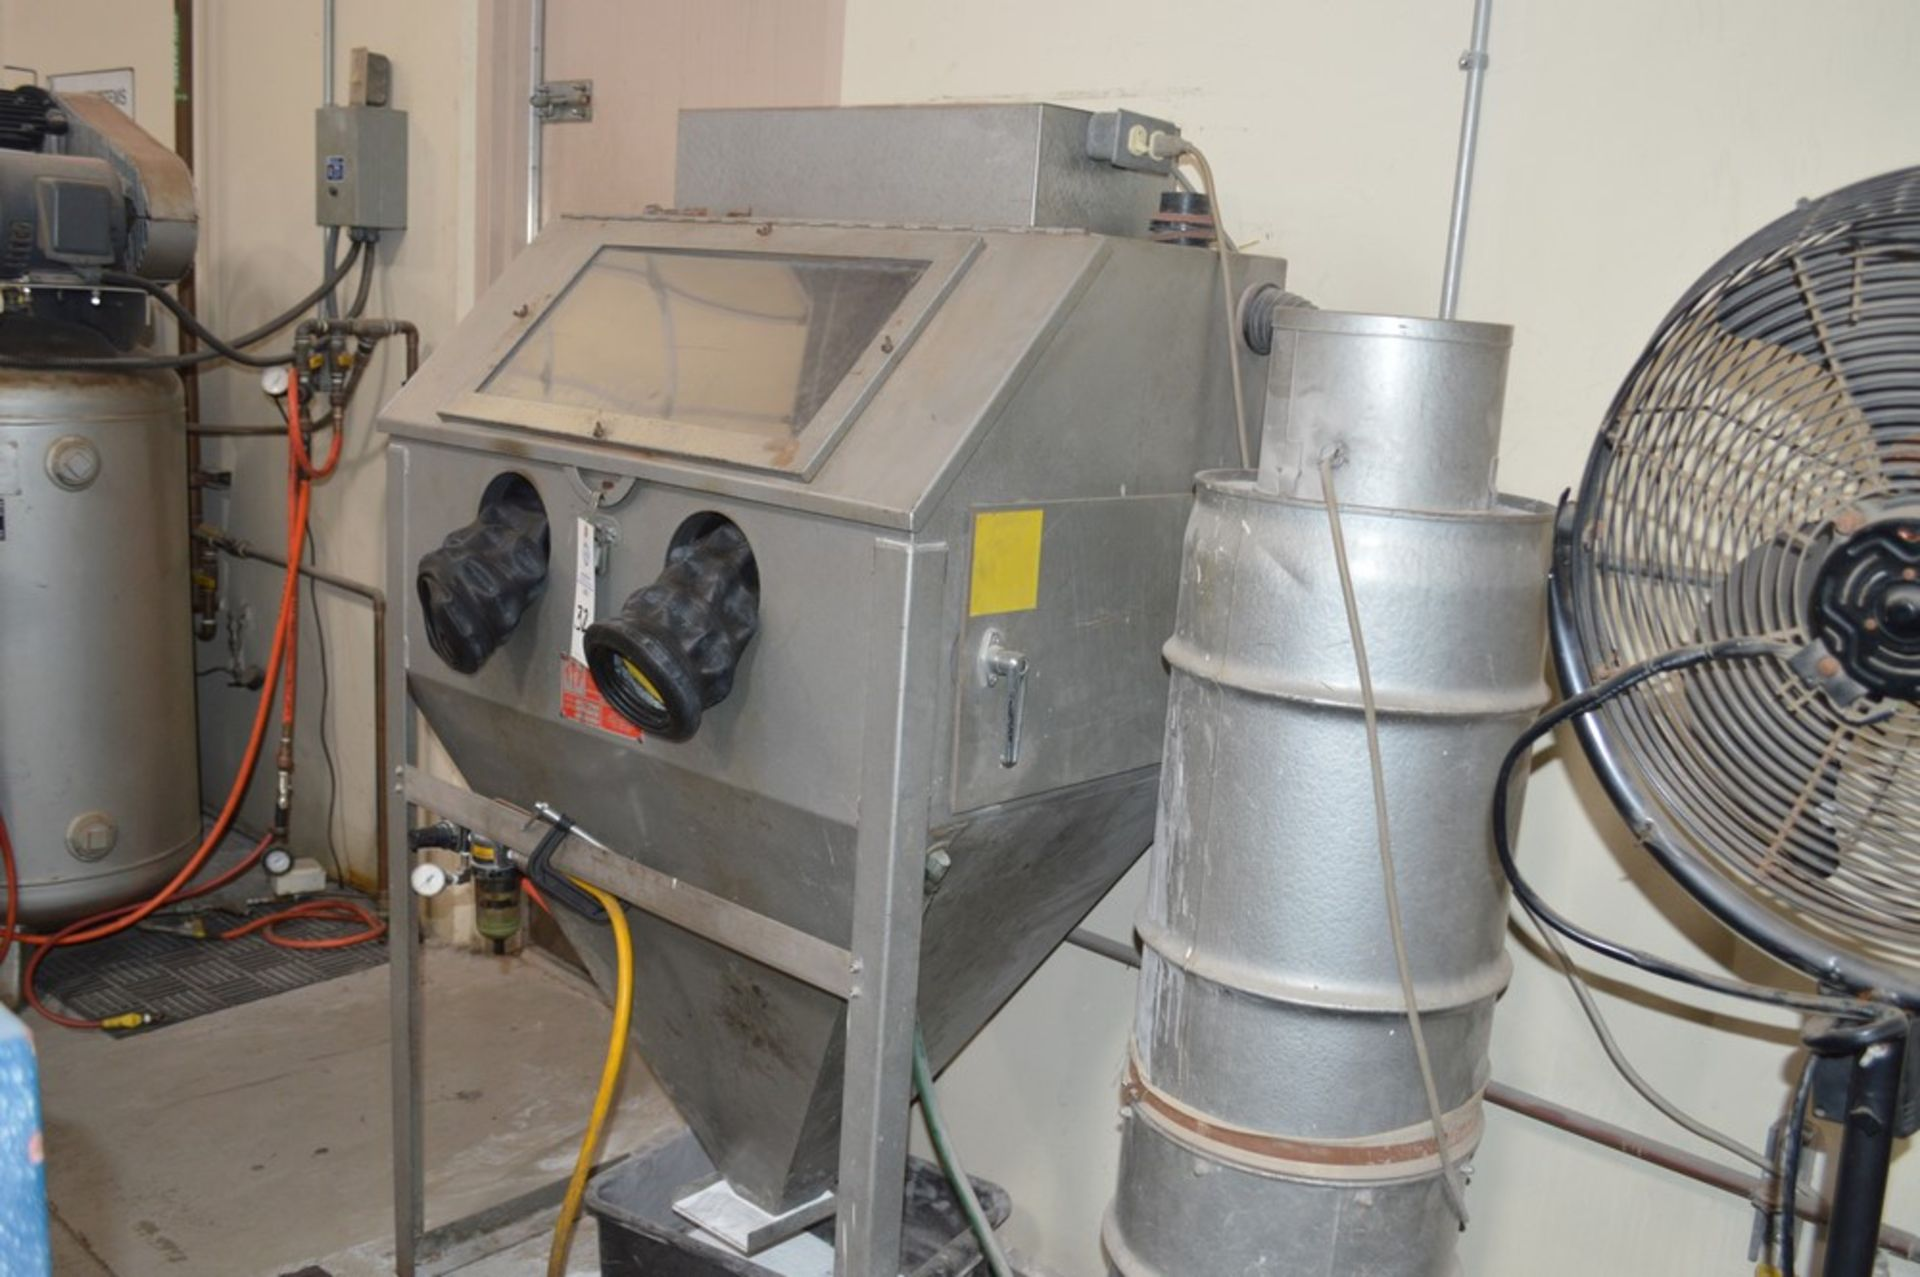 Trinco dry blast cabinet 36/BP-2 with air filter and gloves - Image 3 of 5